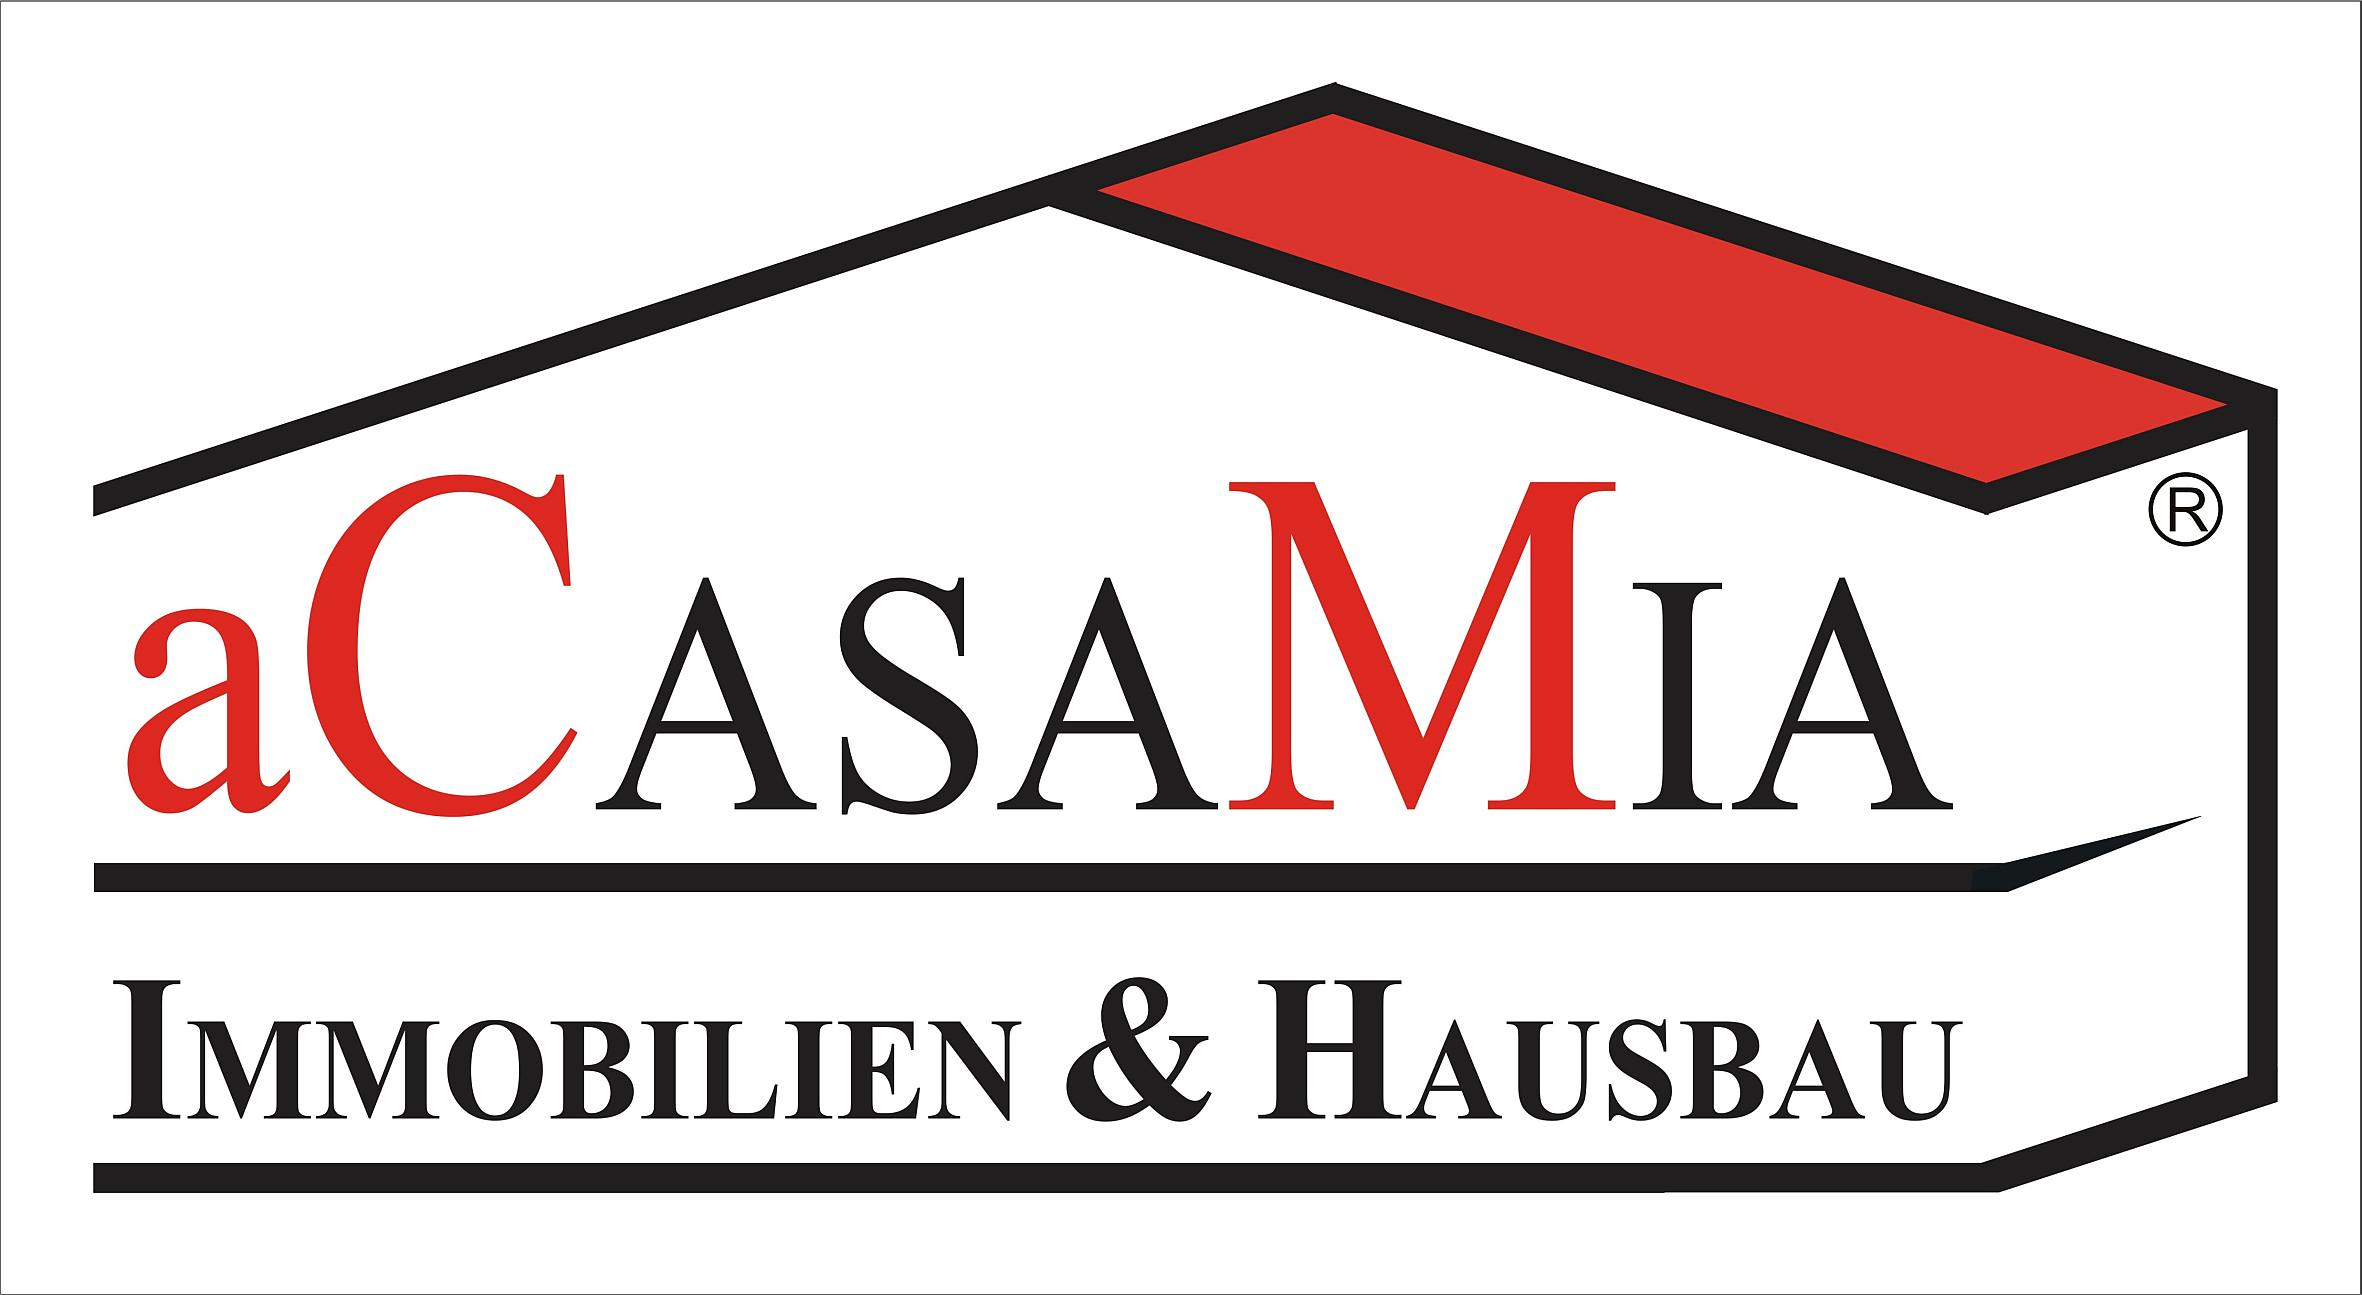 aCASAMIA Immobilien